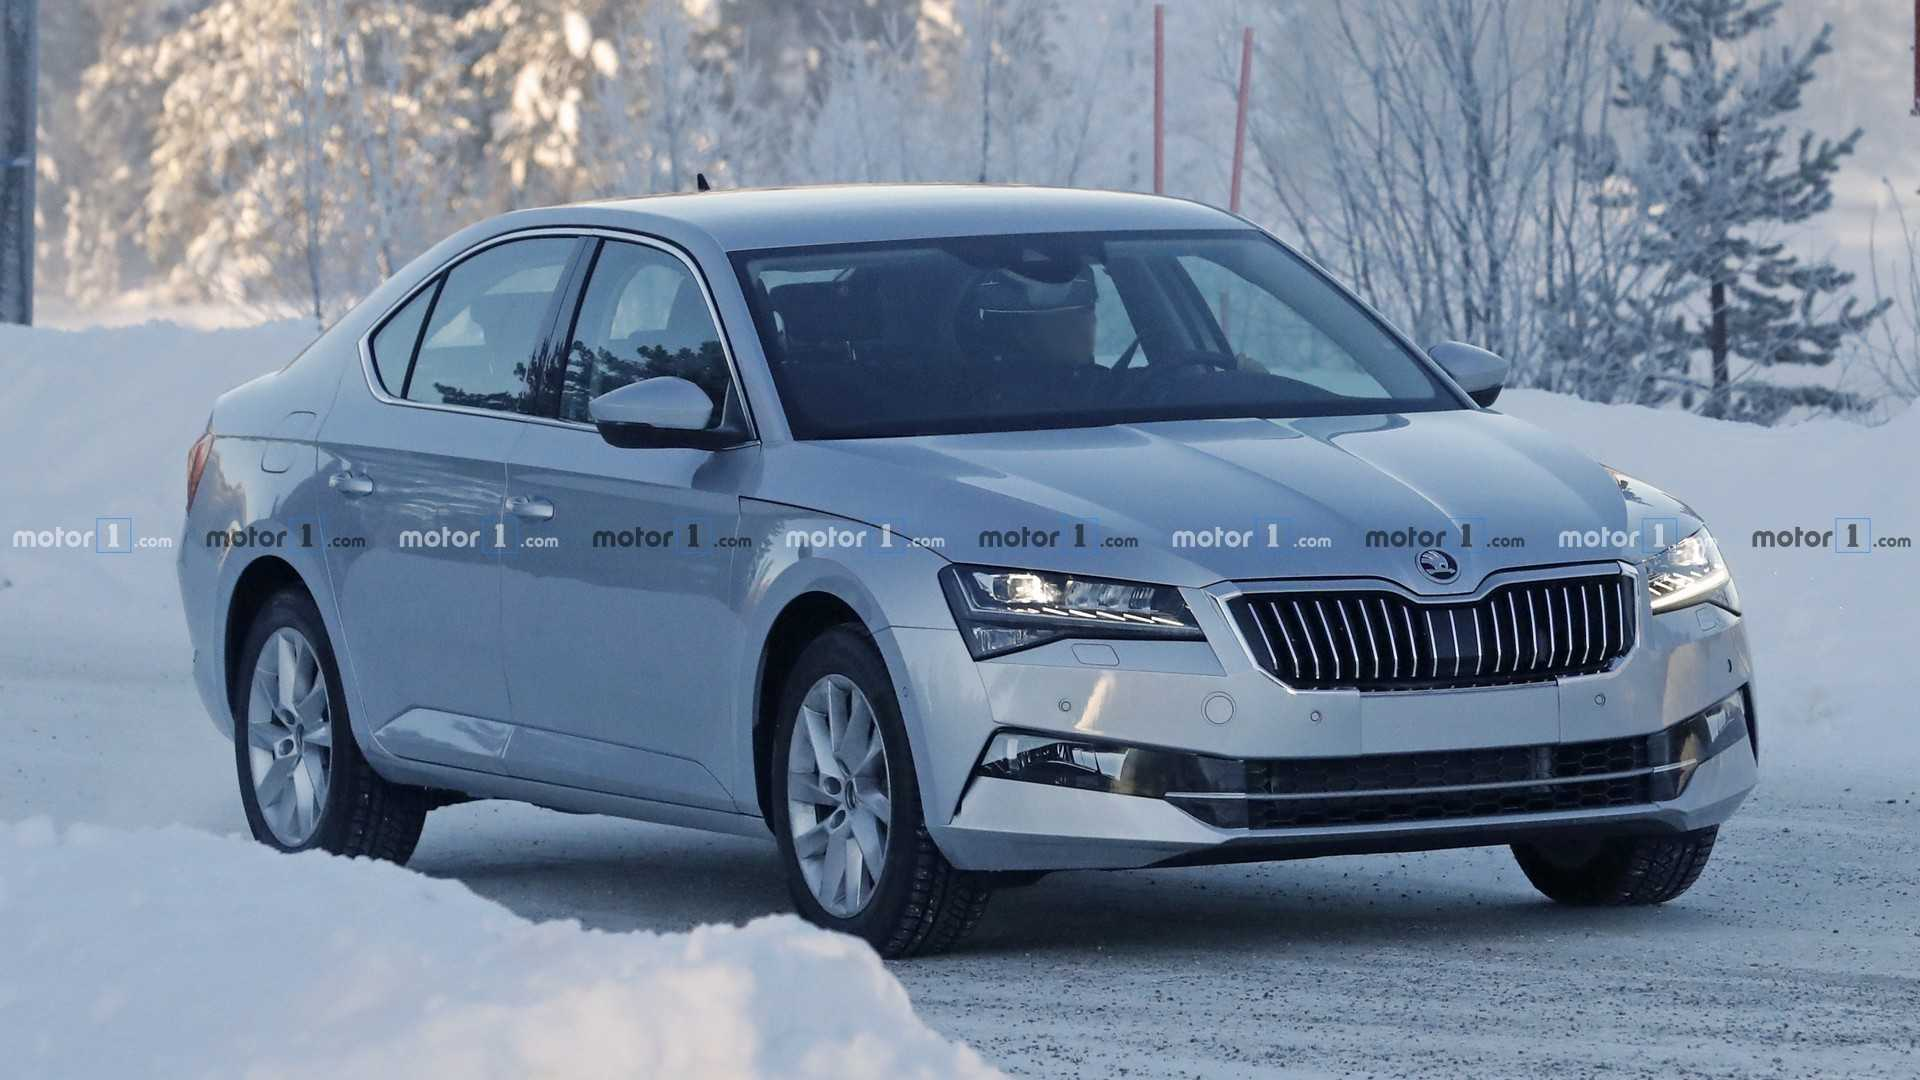 98 A Spy Shots Skoda Superb Engine